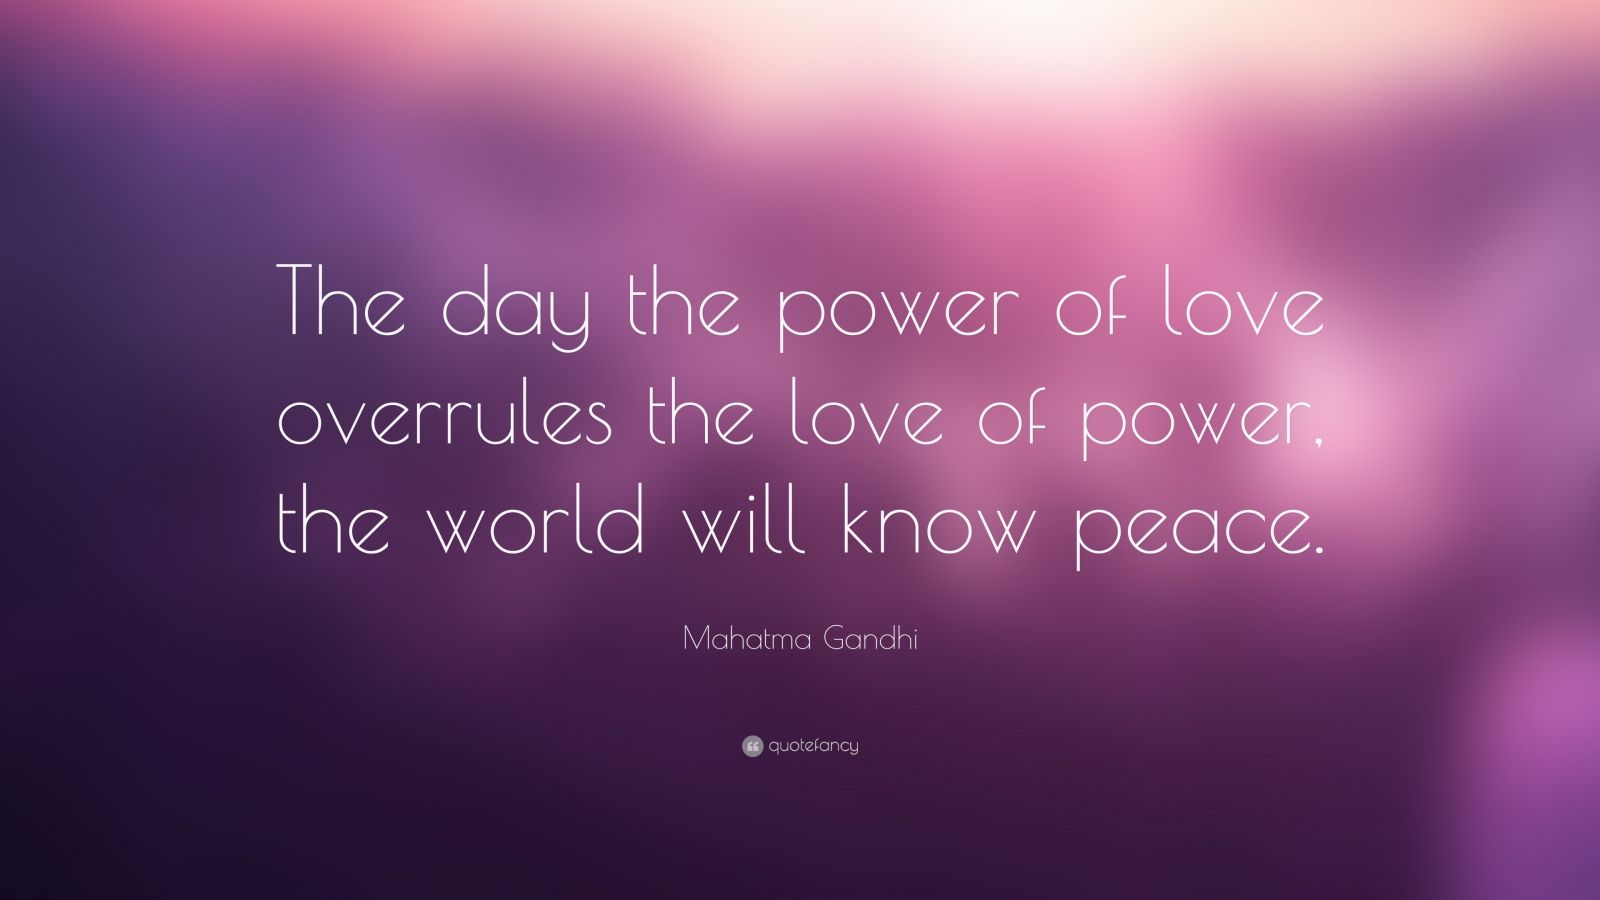 Mahatma Gandhi Wallpaper With Quotes Mahatma Gandhi Quote The Day The Power Of Love Overrules